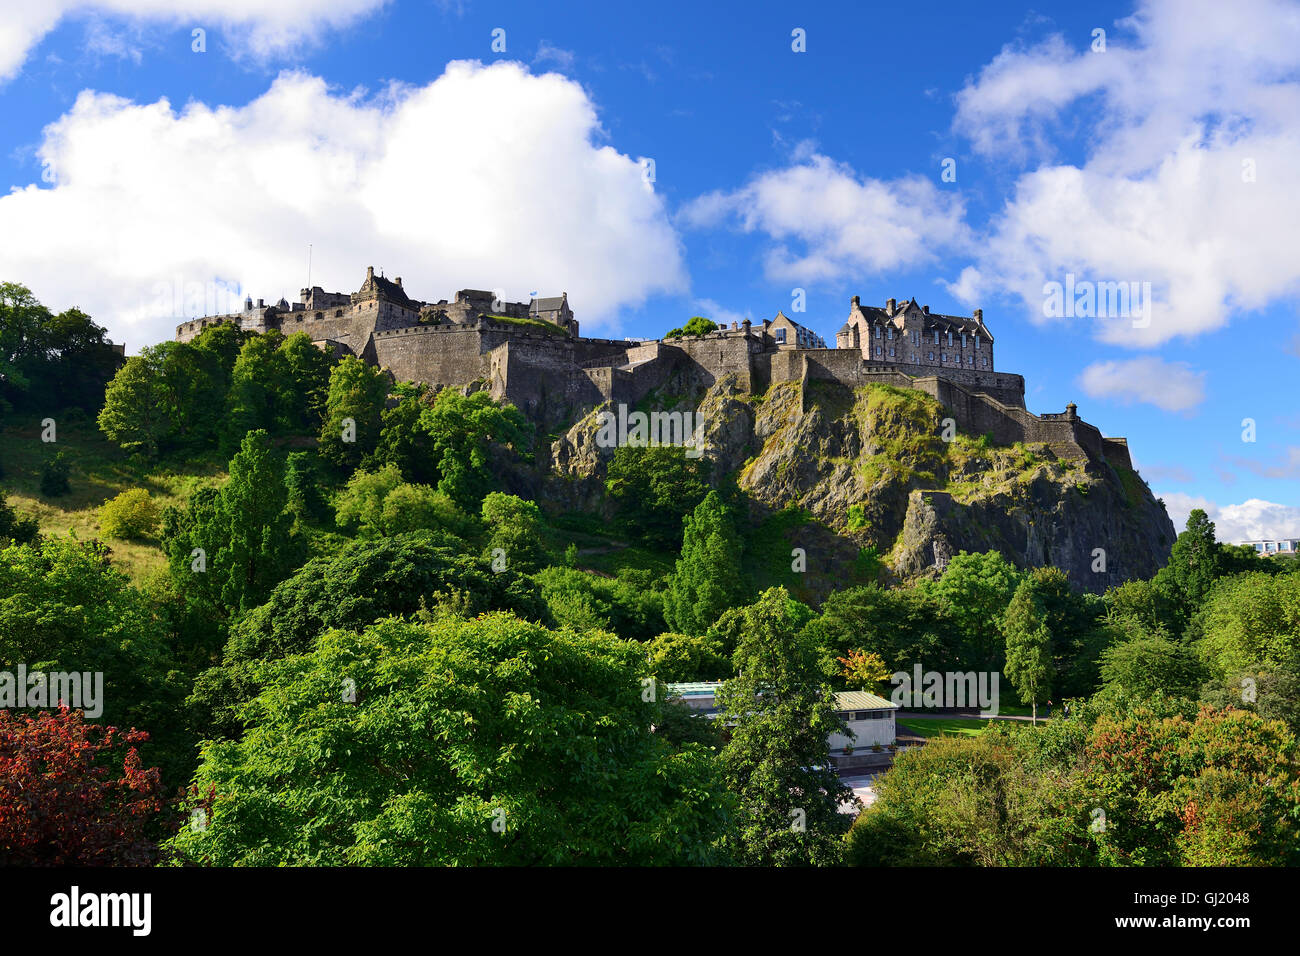 Edinburgh Castle from Princes Street Gardens, Edinburgh, Scotland - Stock Image